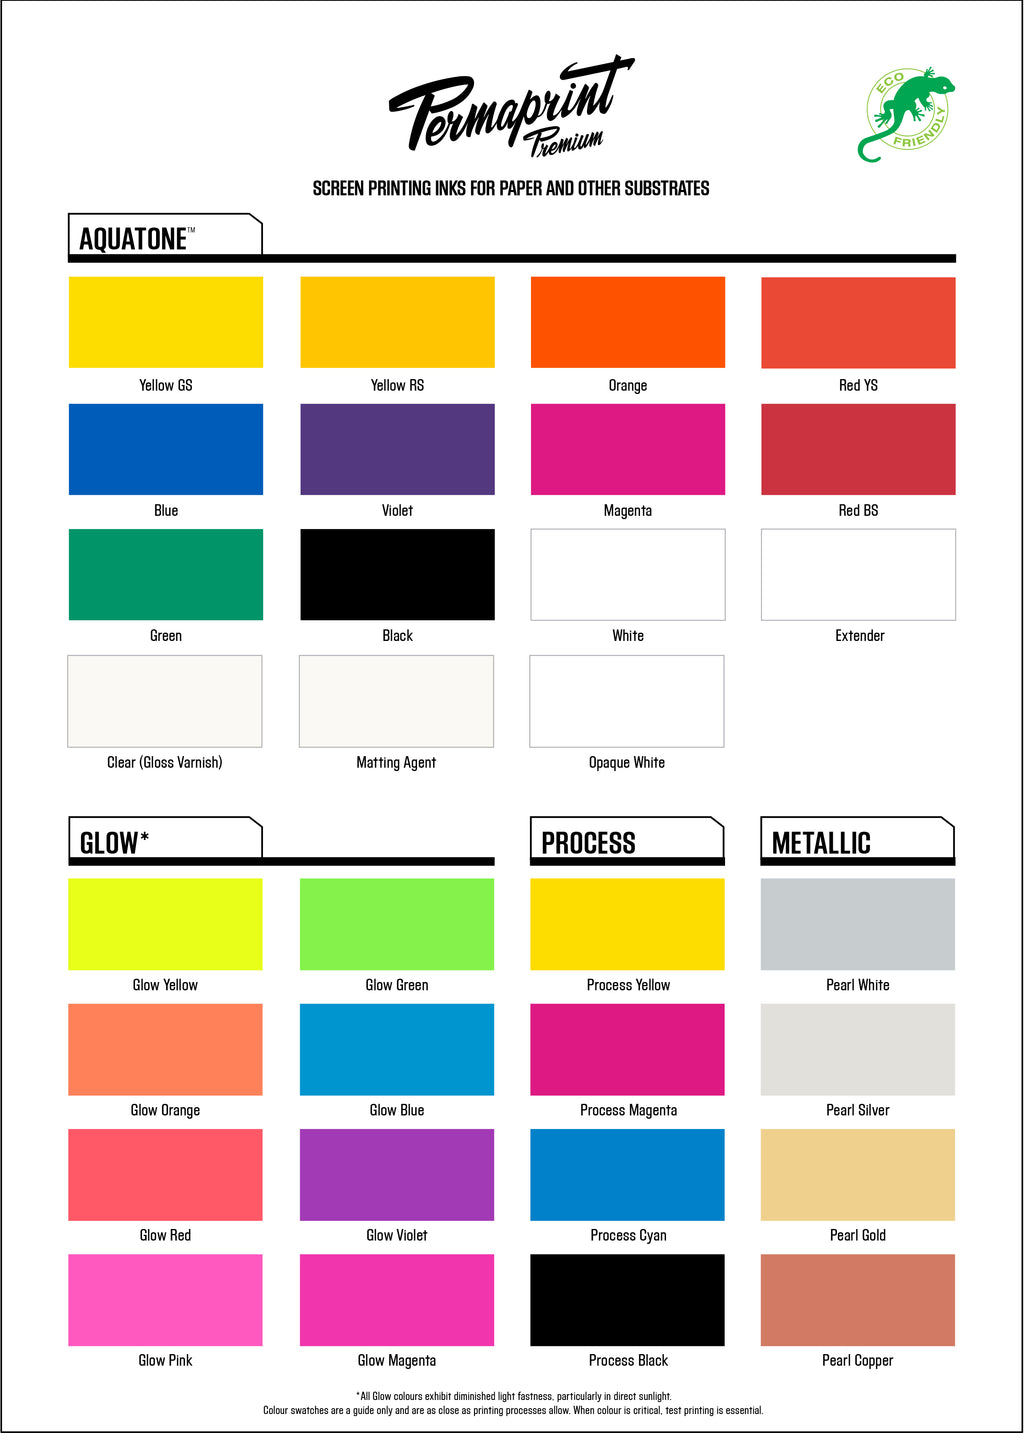 PERMAPRINT PREMIUM water-based inks for paper and other substrates color guide